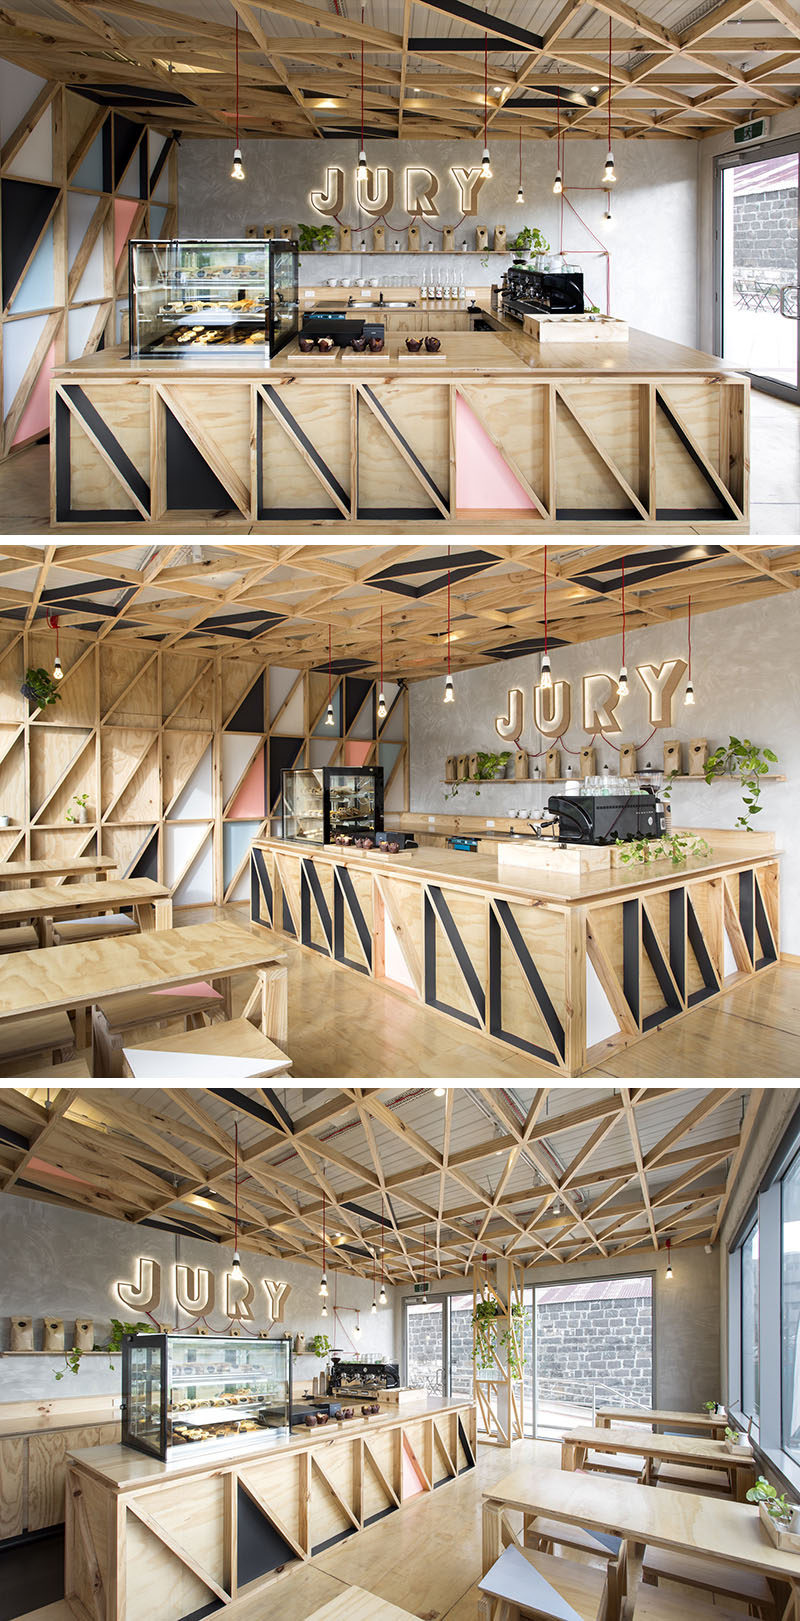 This modern coffee shop has been designed with a diagonal wood pattern on the wall, ceiling and bar front.